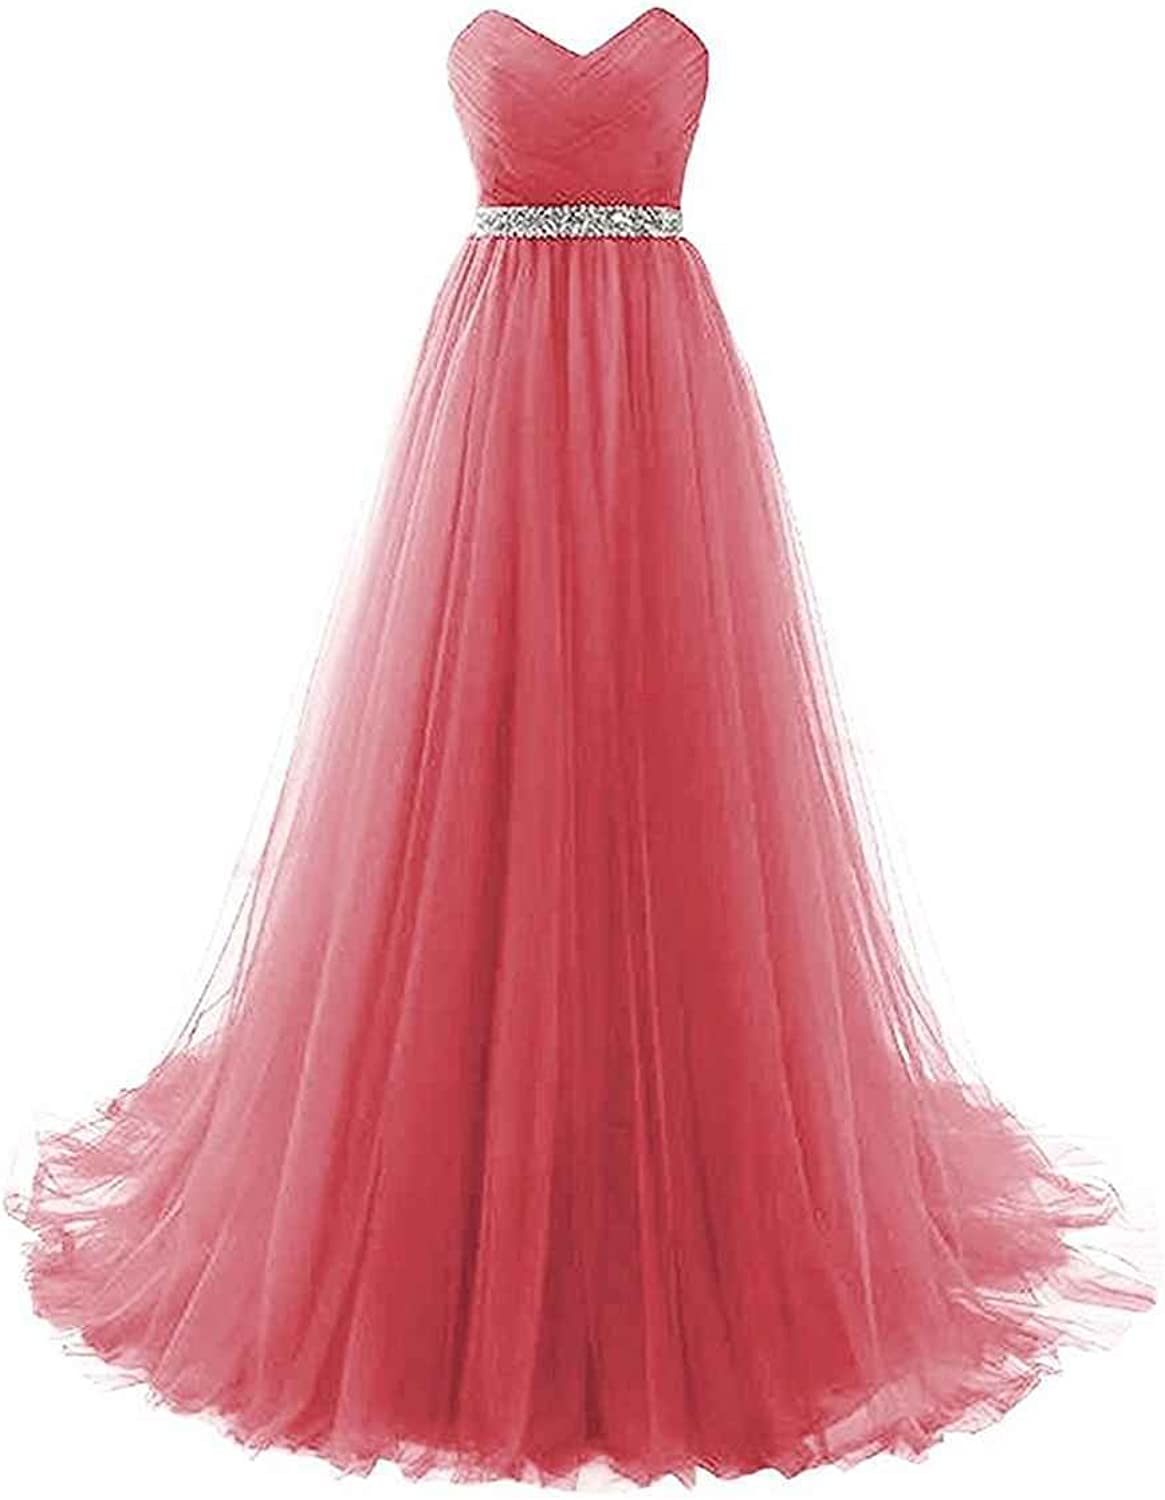 LastBridal Women Tulle Strapless Prom Bridesmaid Dresses Long Formal Evening Gowns